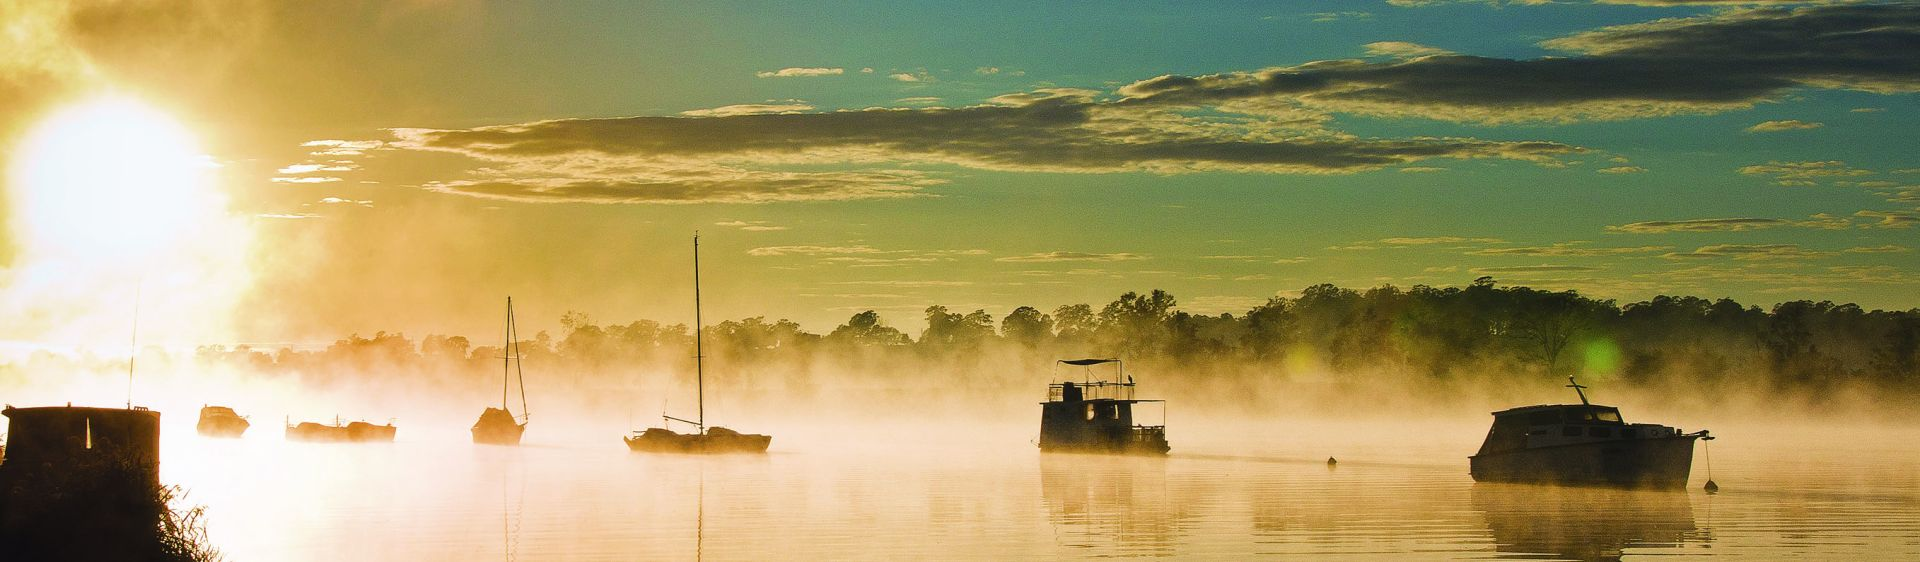 Morning mist on the Clarence River estuary, Yamba